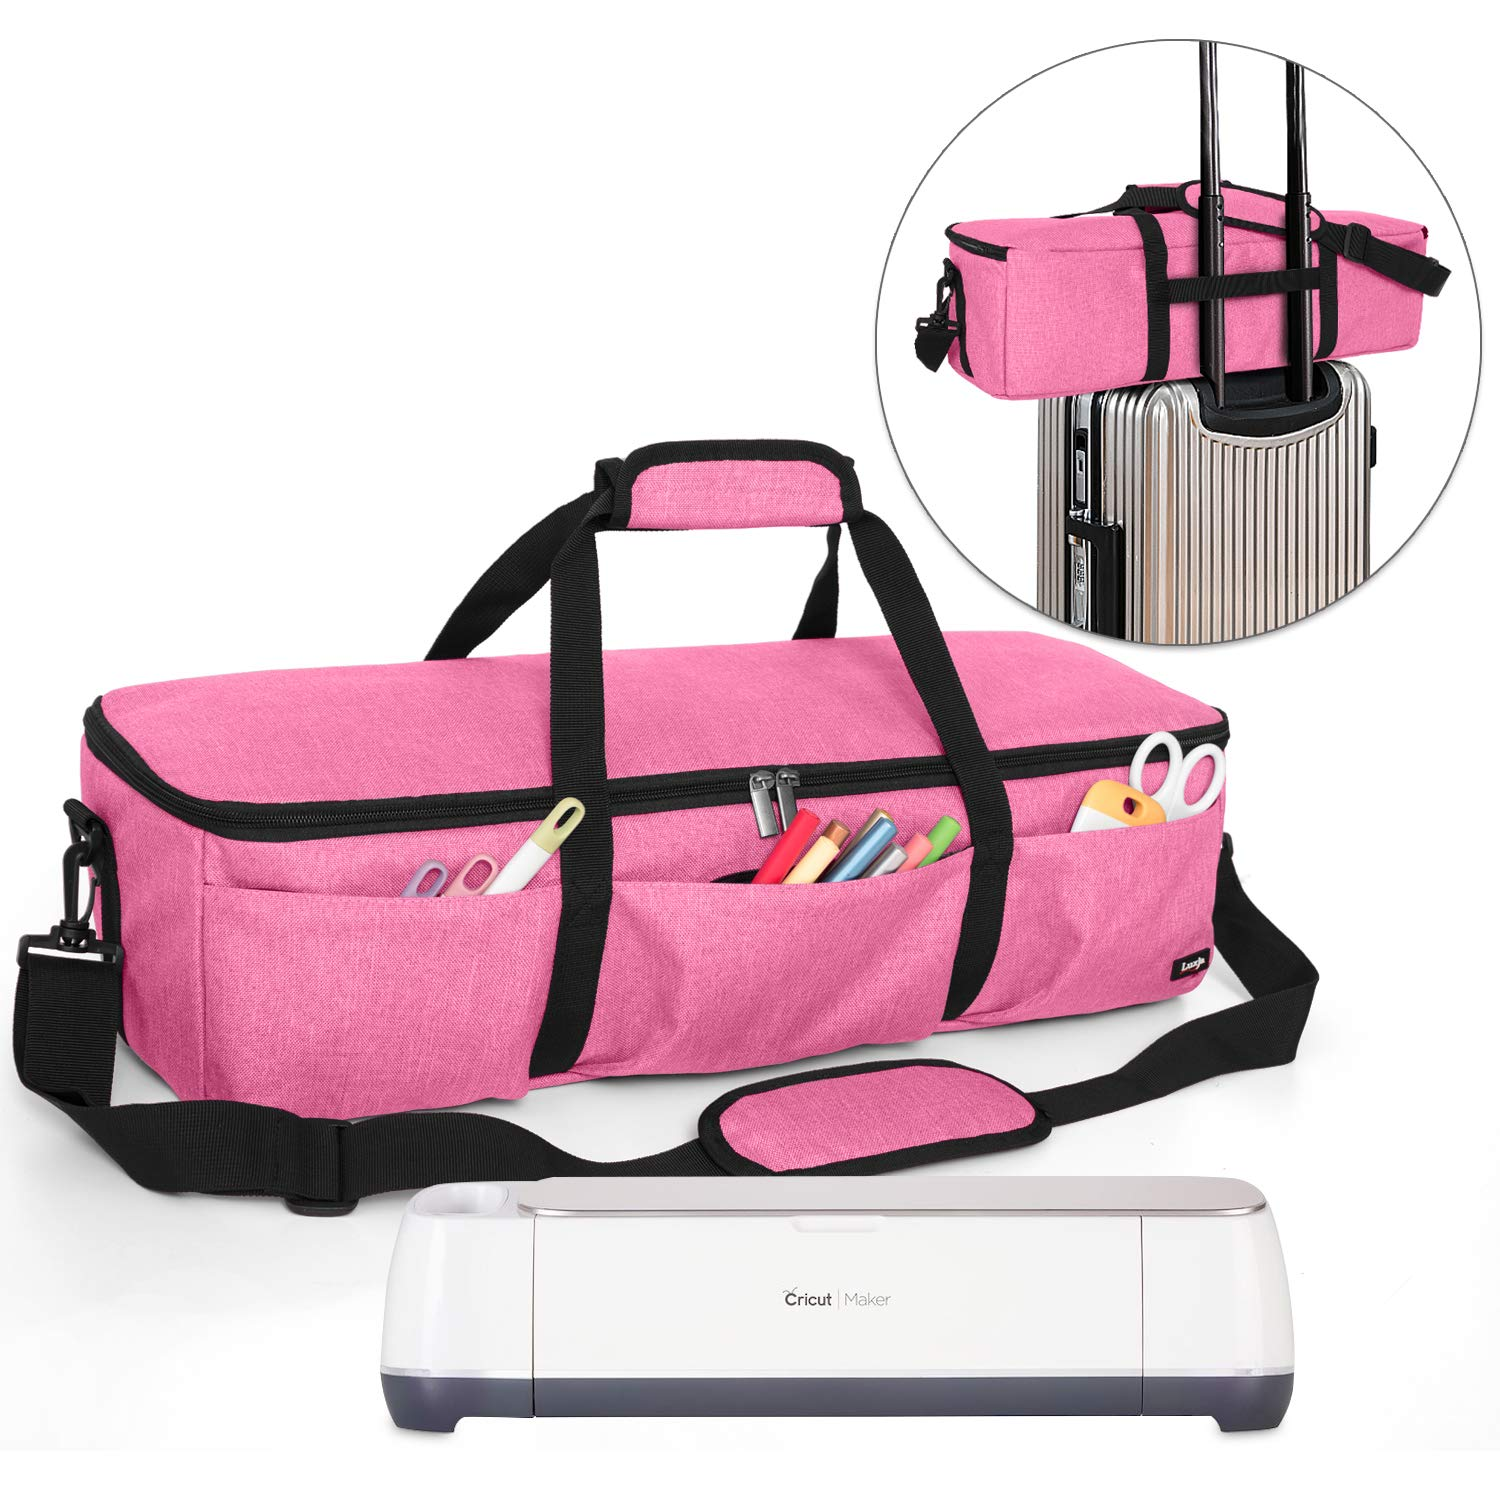 Luxja Foldable Bag Compatible with Cricut Explore Air and Maker, Carrying Bag Compatible with Cricut Explore Air and Supplies (Bag Only), Pink by LUXJA